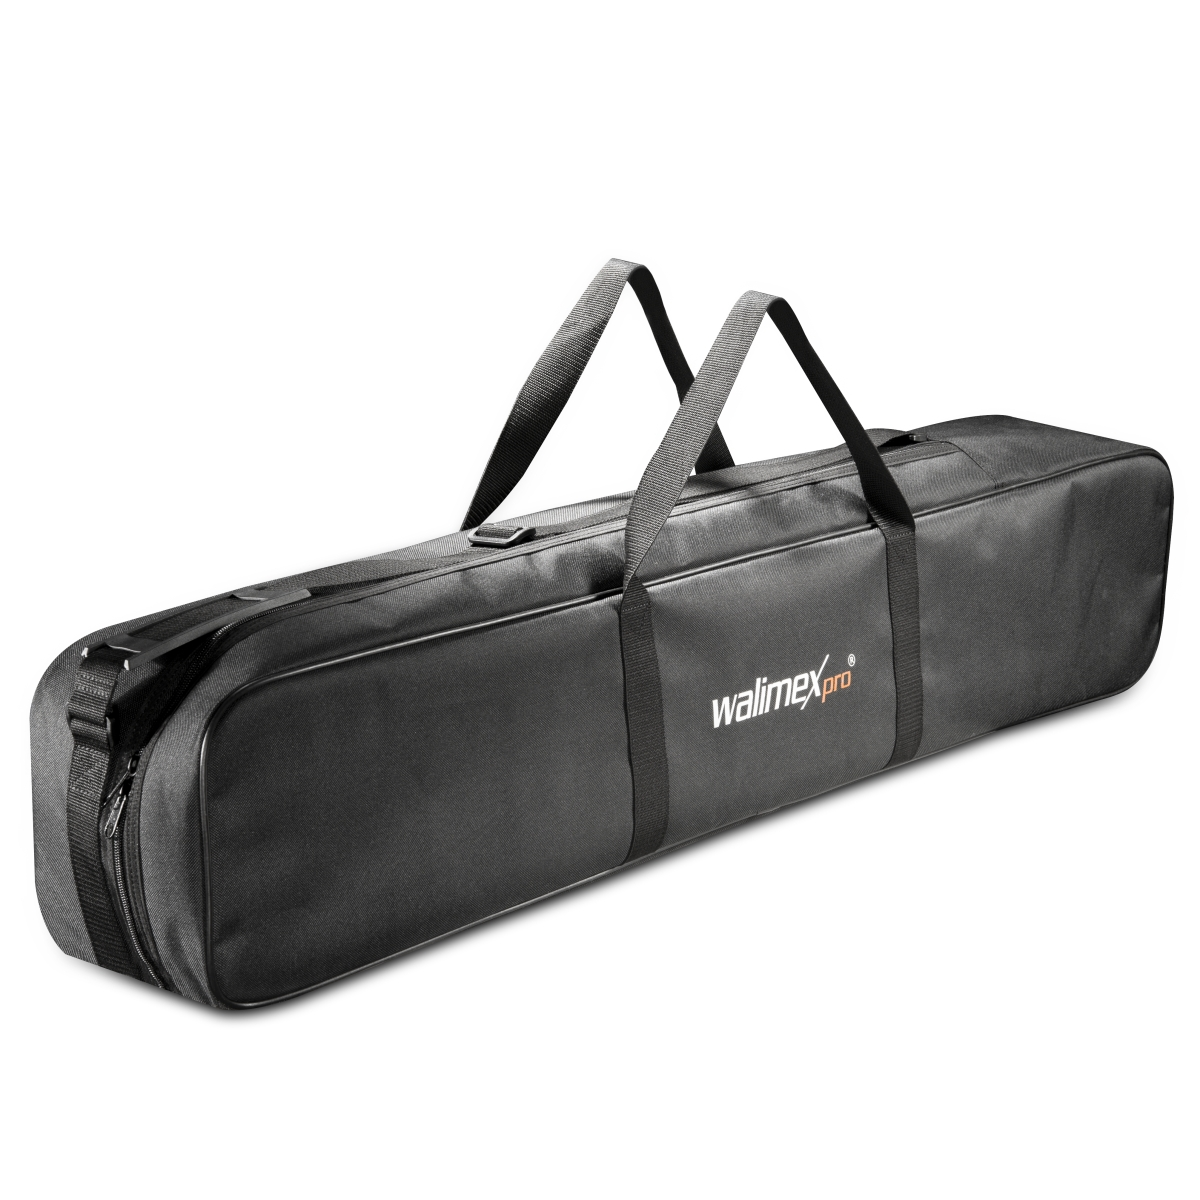 Walimex pro Tripod Bag 95cm for Studio Tripods